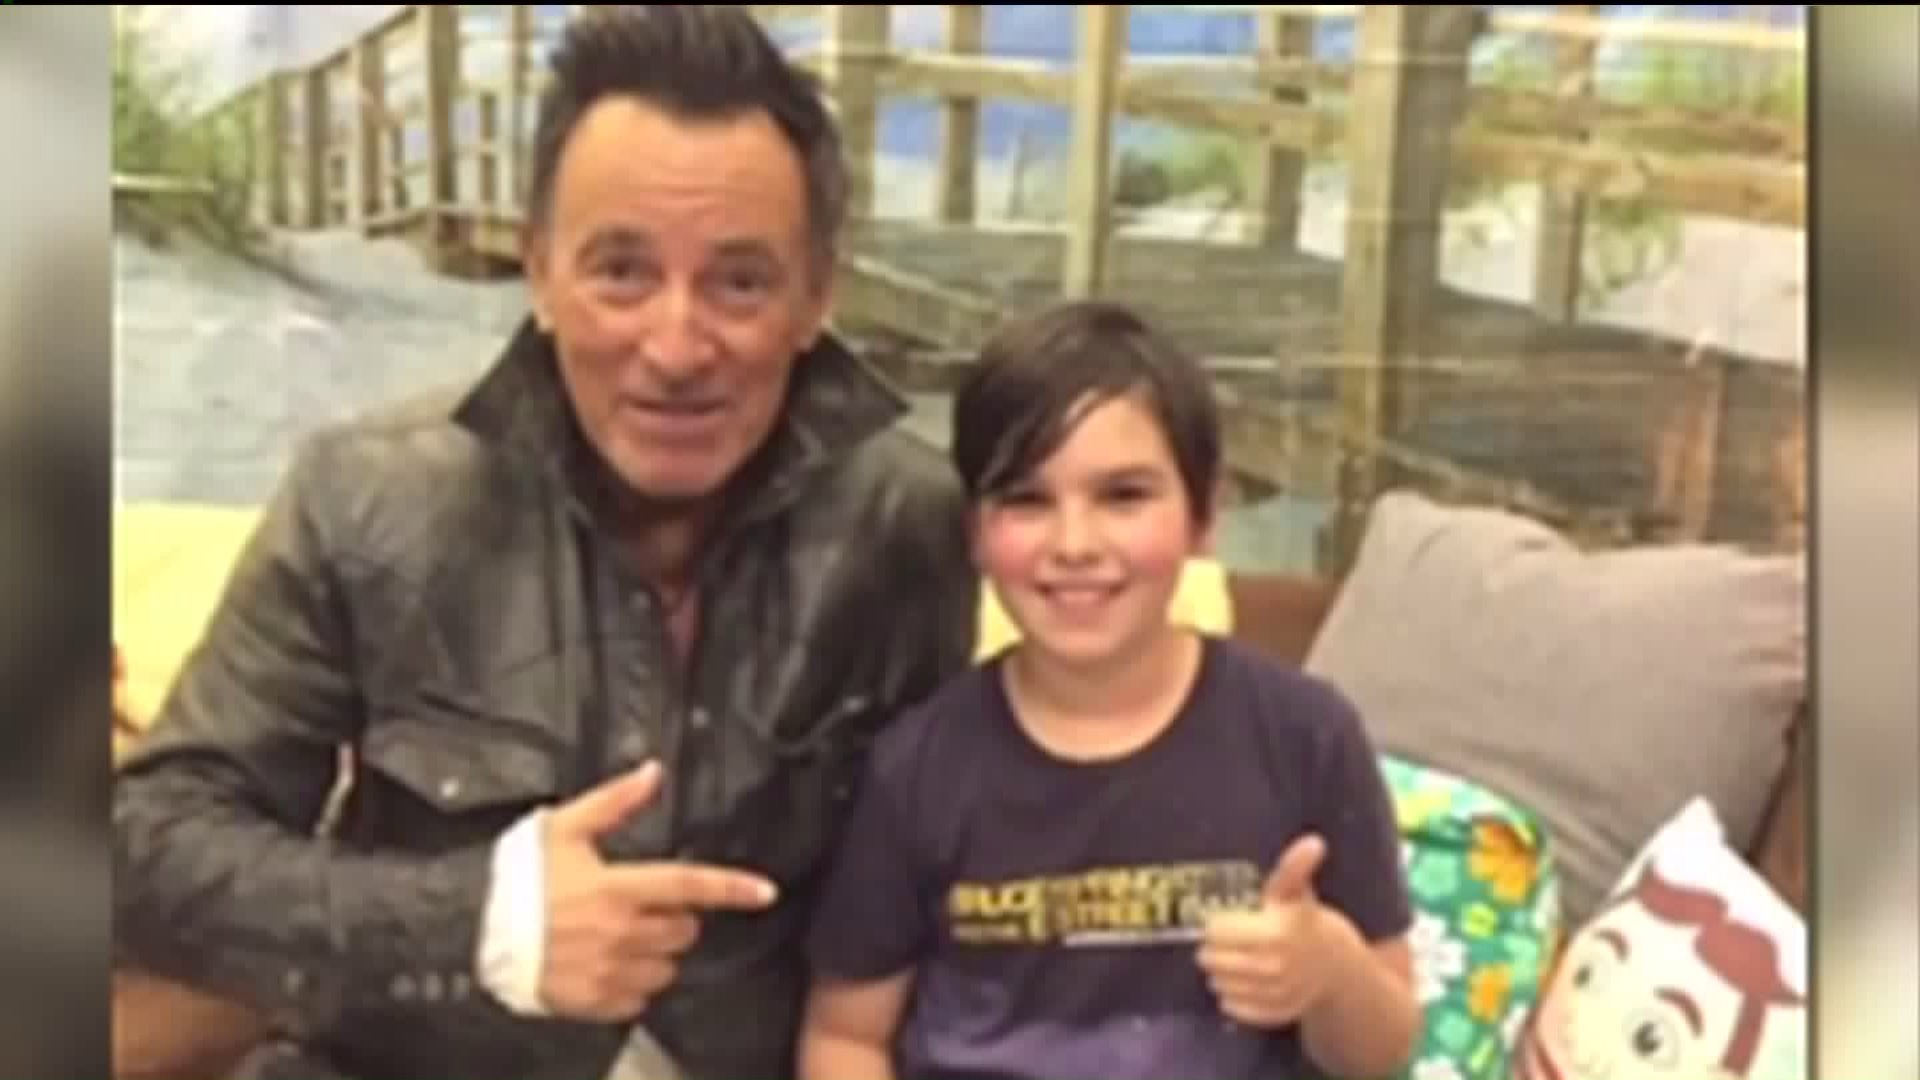 'The Boss' Writes Tardy Note for Boy Out Late at Springsteen Concert